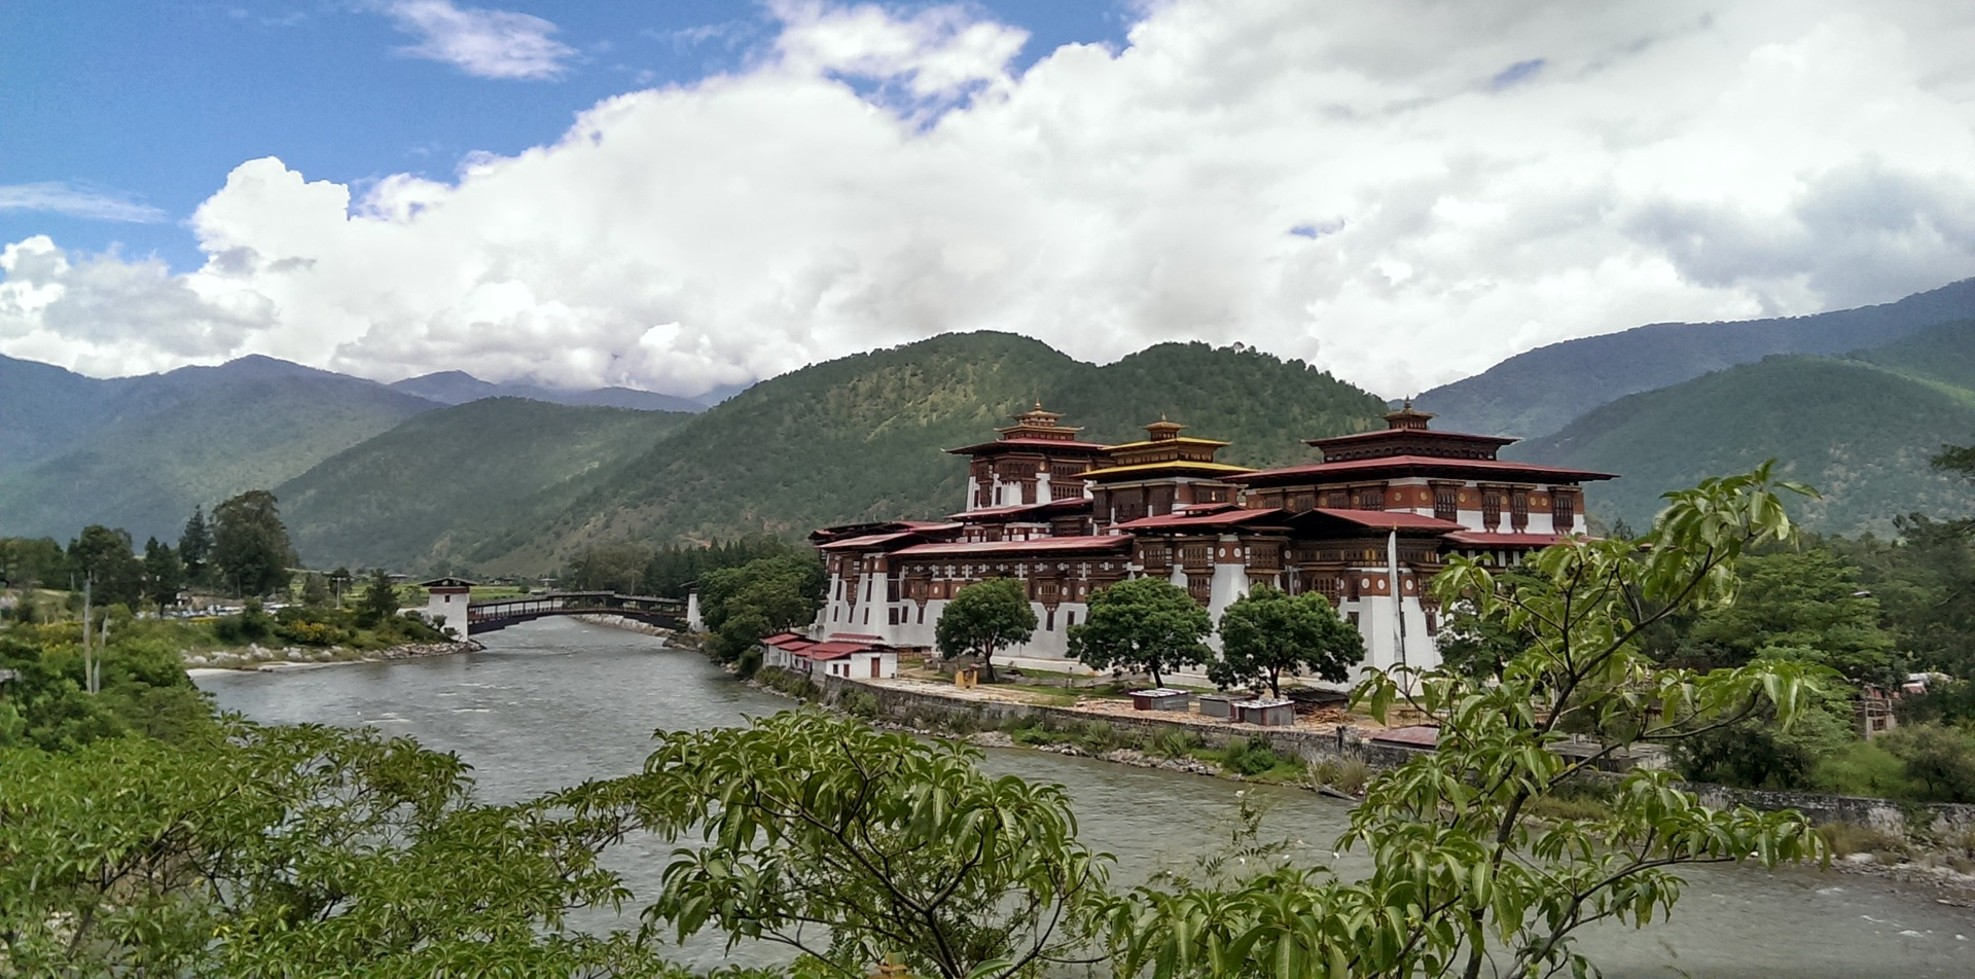 Best of the Bhutan Tour | Small Group Tour for Seniors